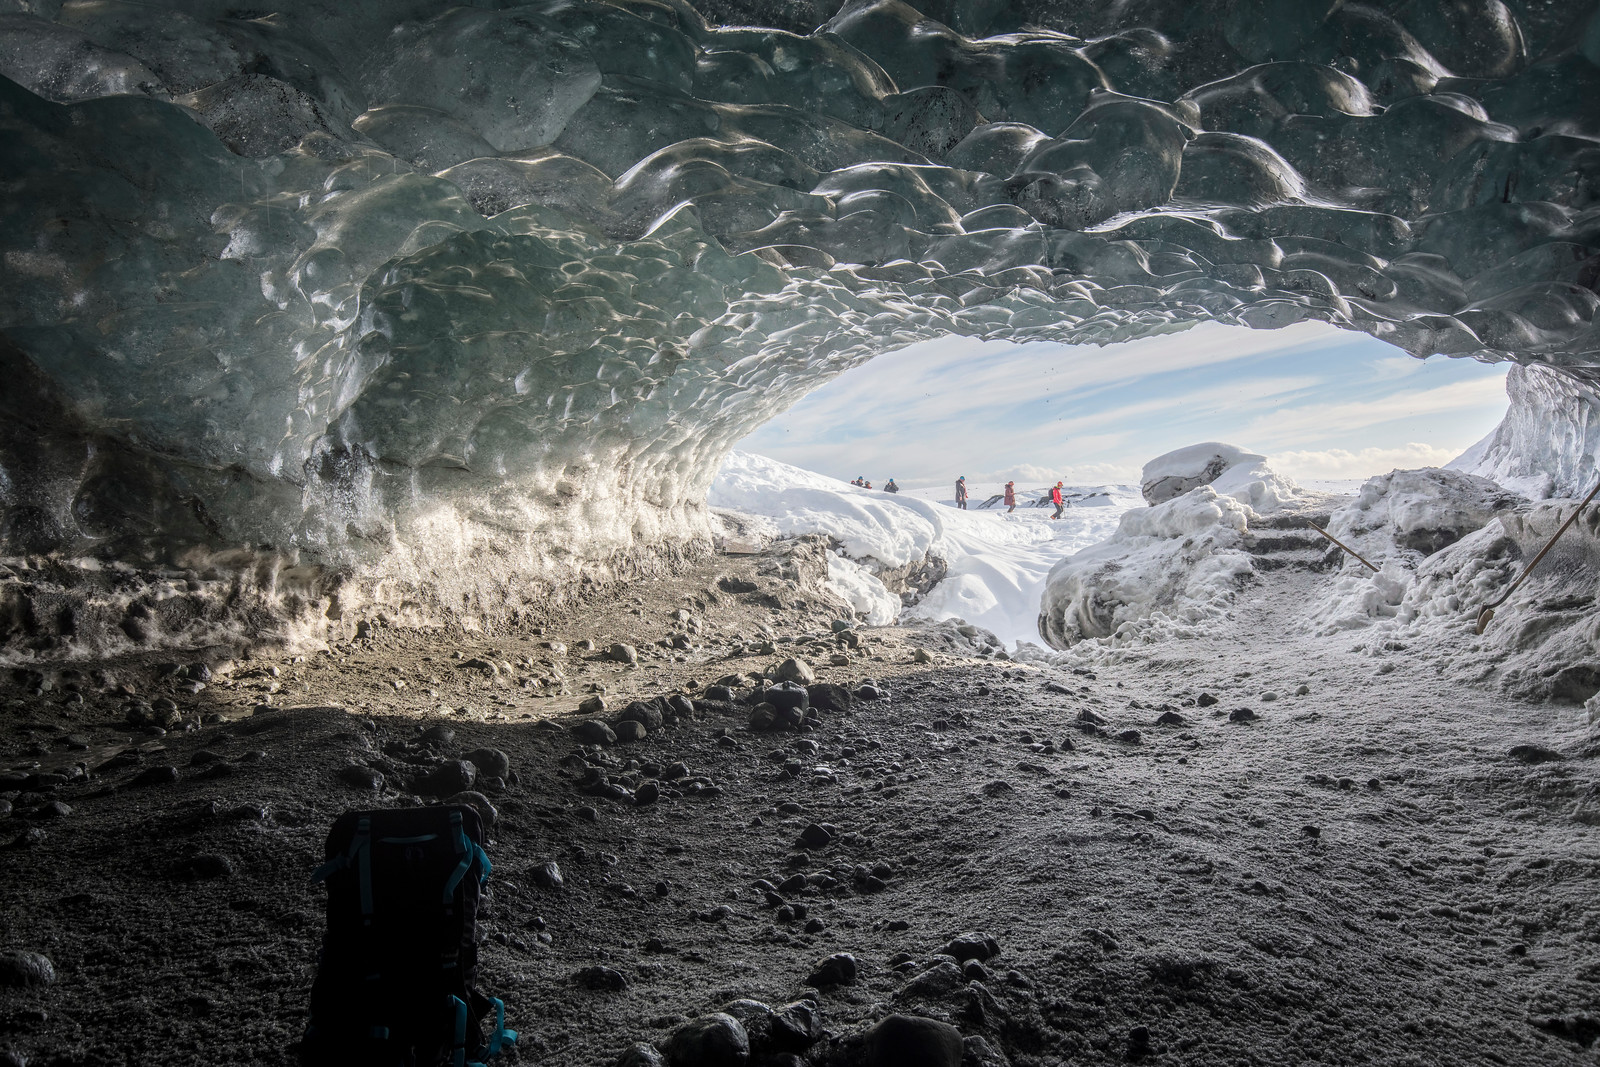 Ice caves large enough to walk in and explore add a whole new dimension